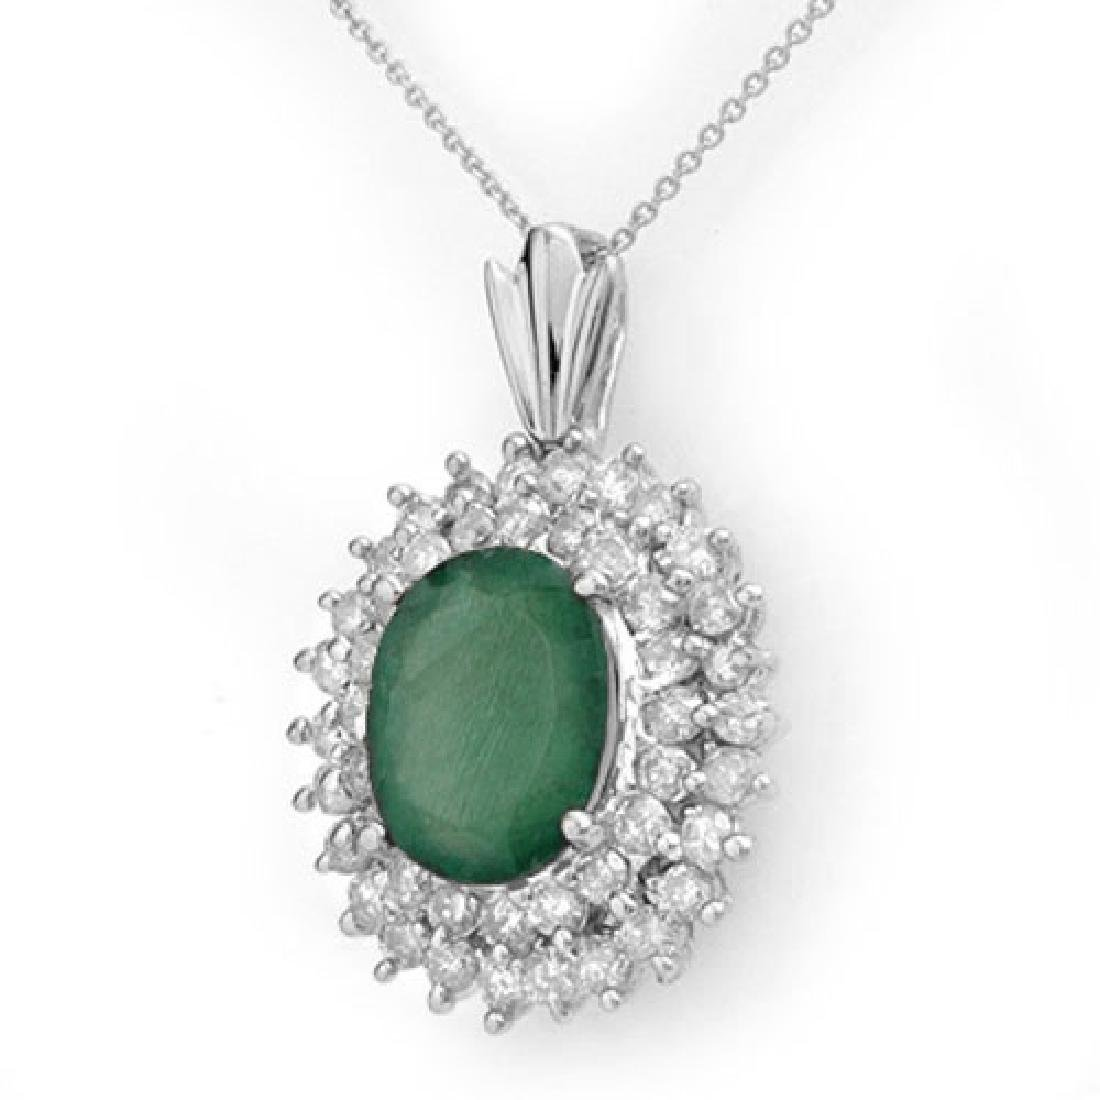 10.11 CTW Emerald & Diamond Pendant 18K White Gold